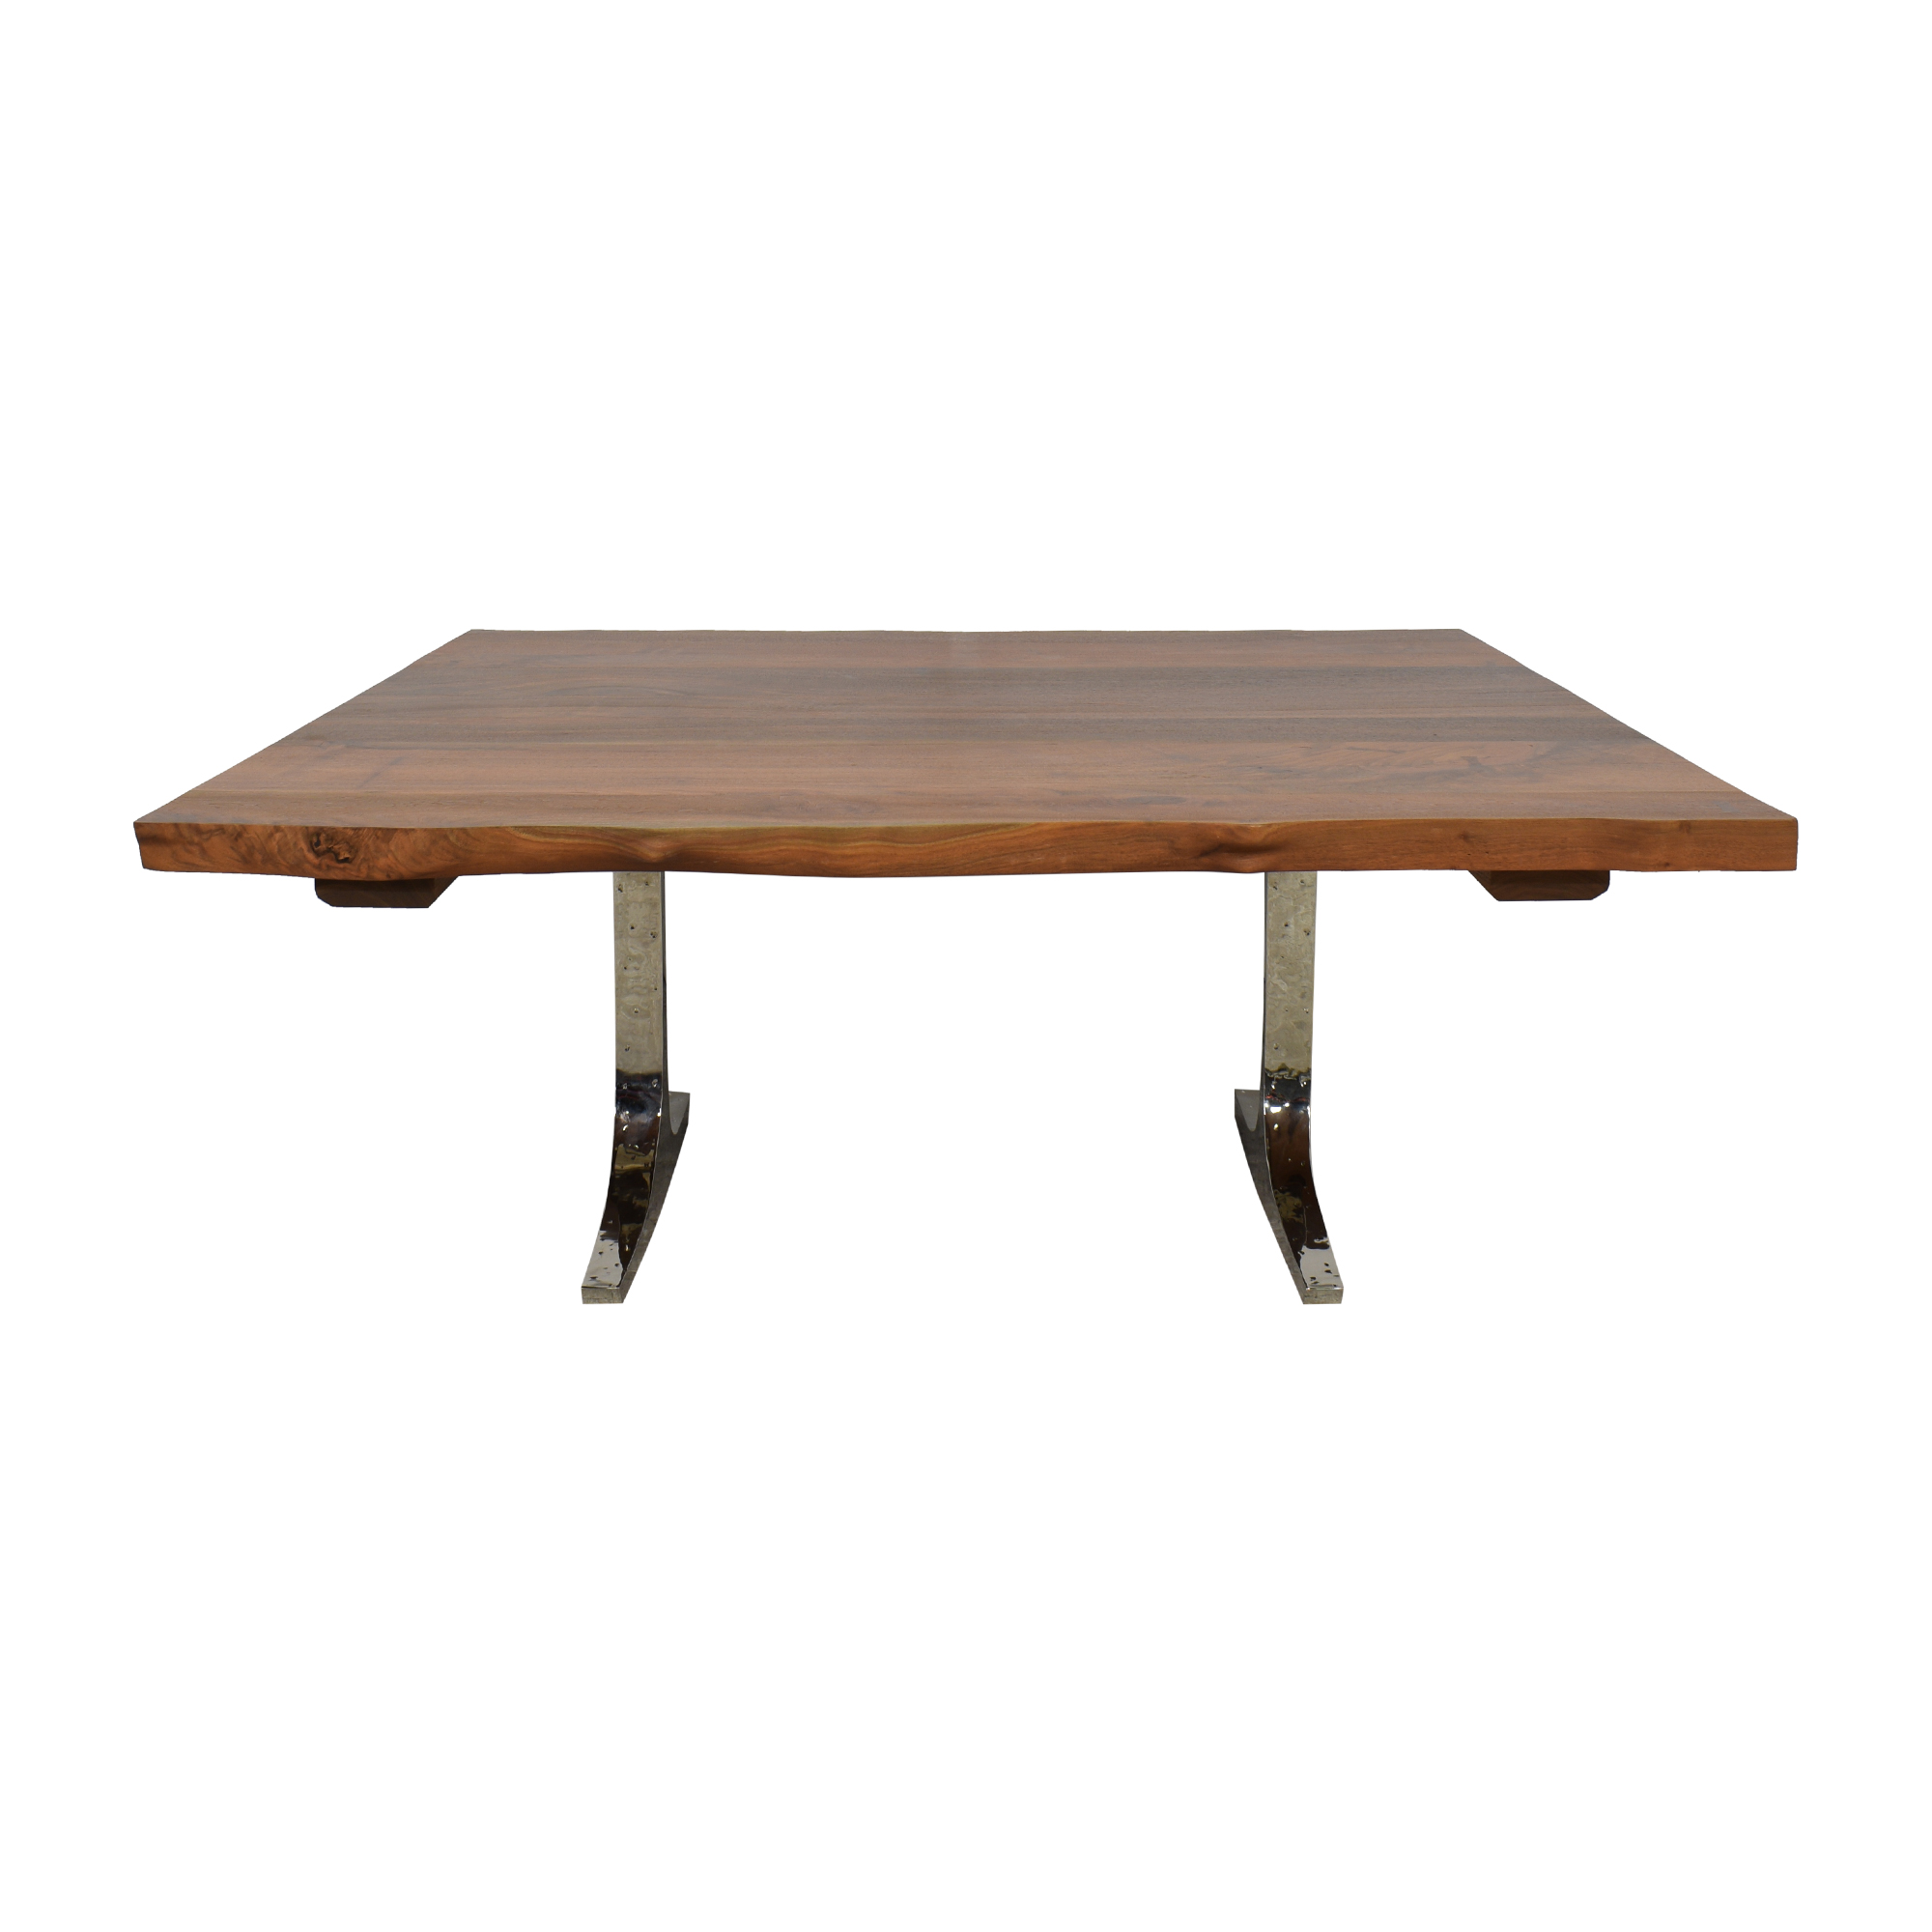 shop Hudson Furniture Live Edge Dining Table Hudson Furniture & Bedding Dinner Tables